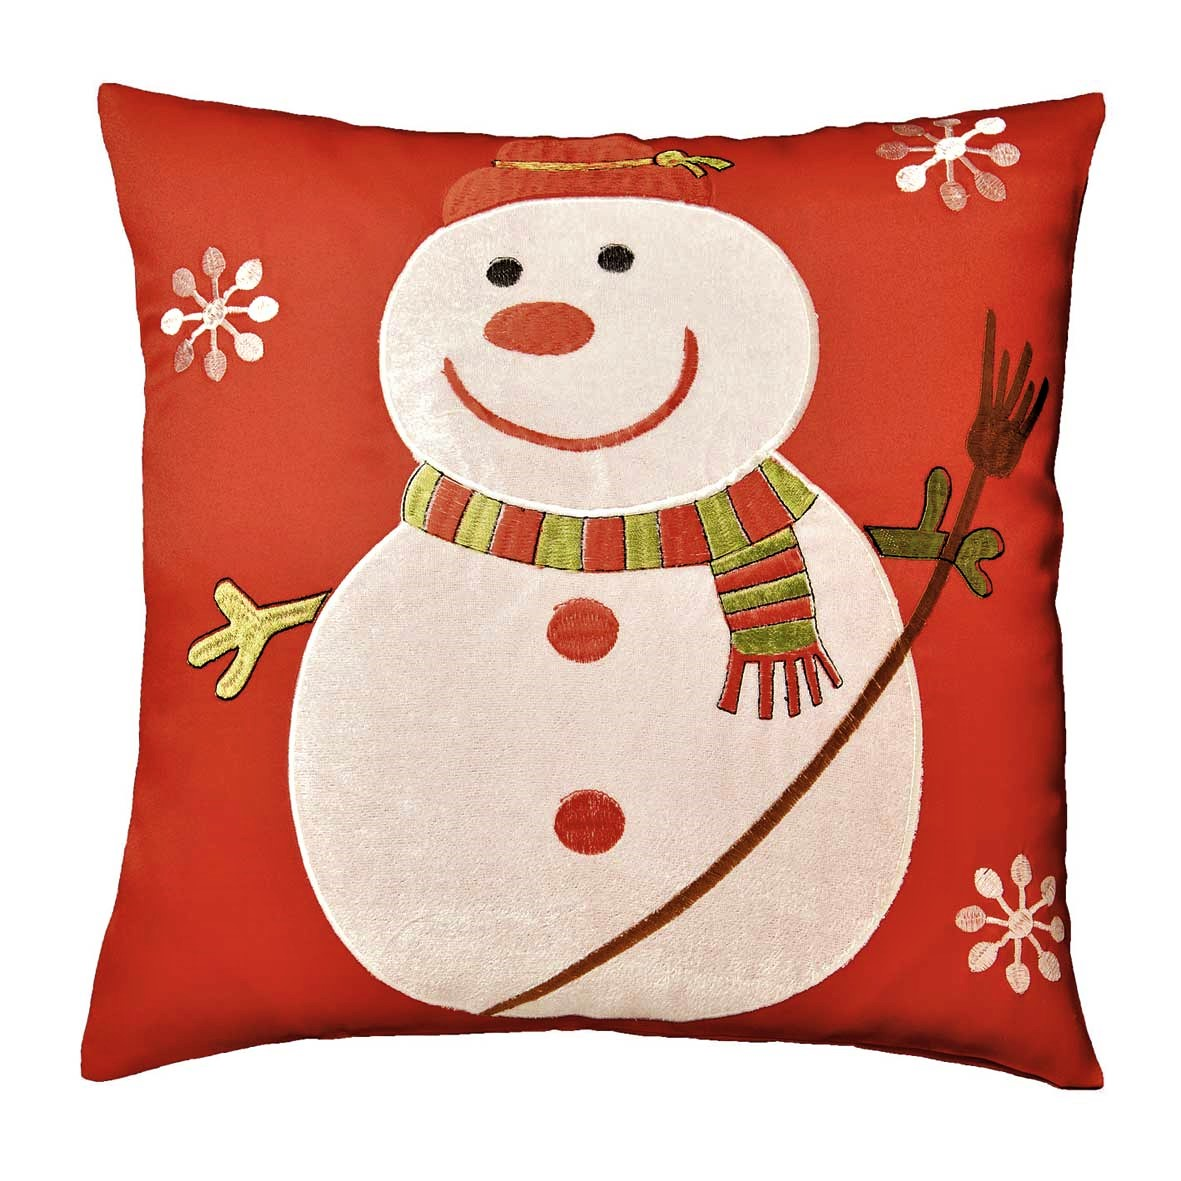 Snowman cushion cover in a 16 x 16 inch square